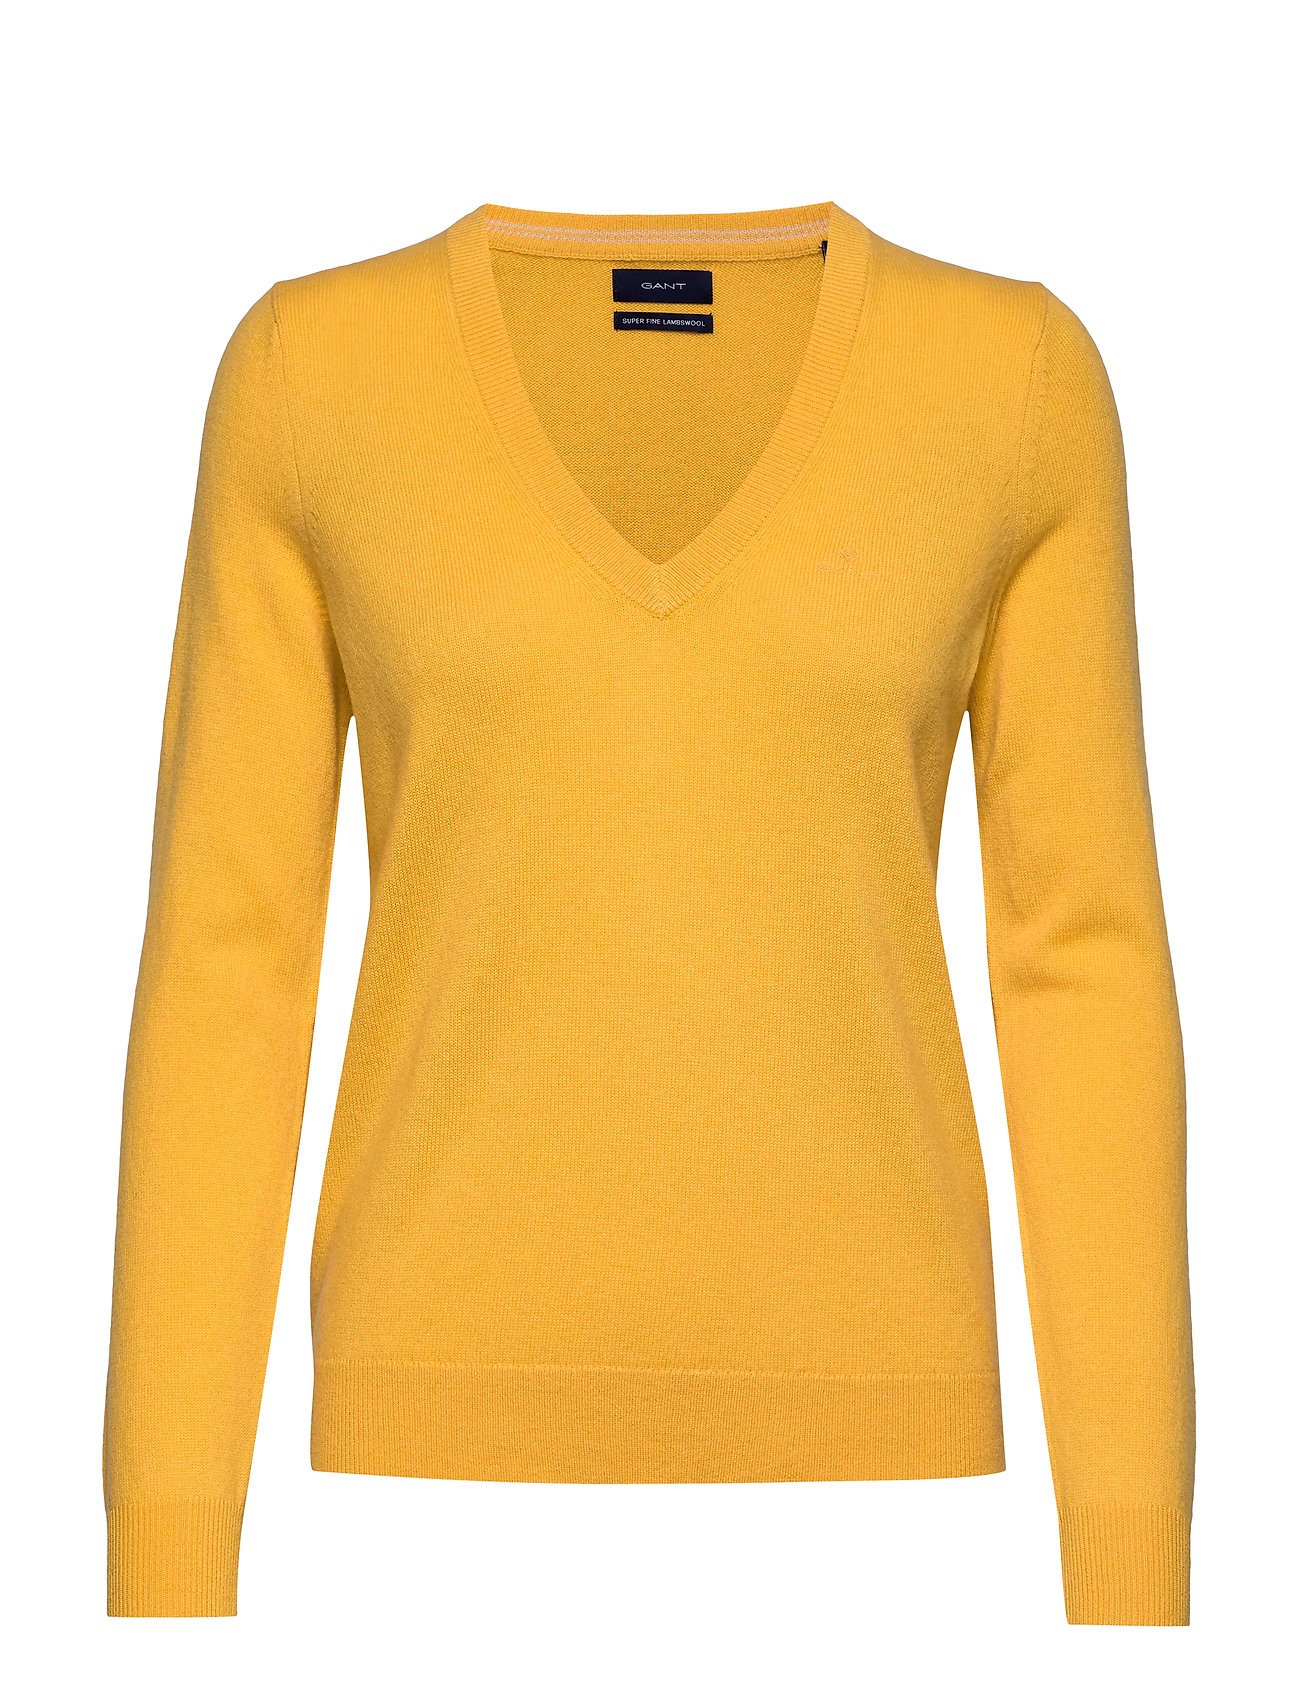 Gant SUPERFINE LAMBSWOOL V-NECK - IVY GOLD